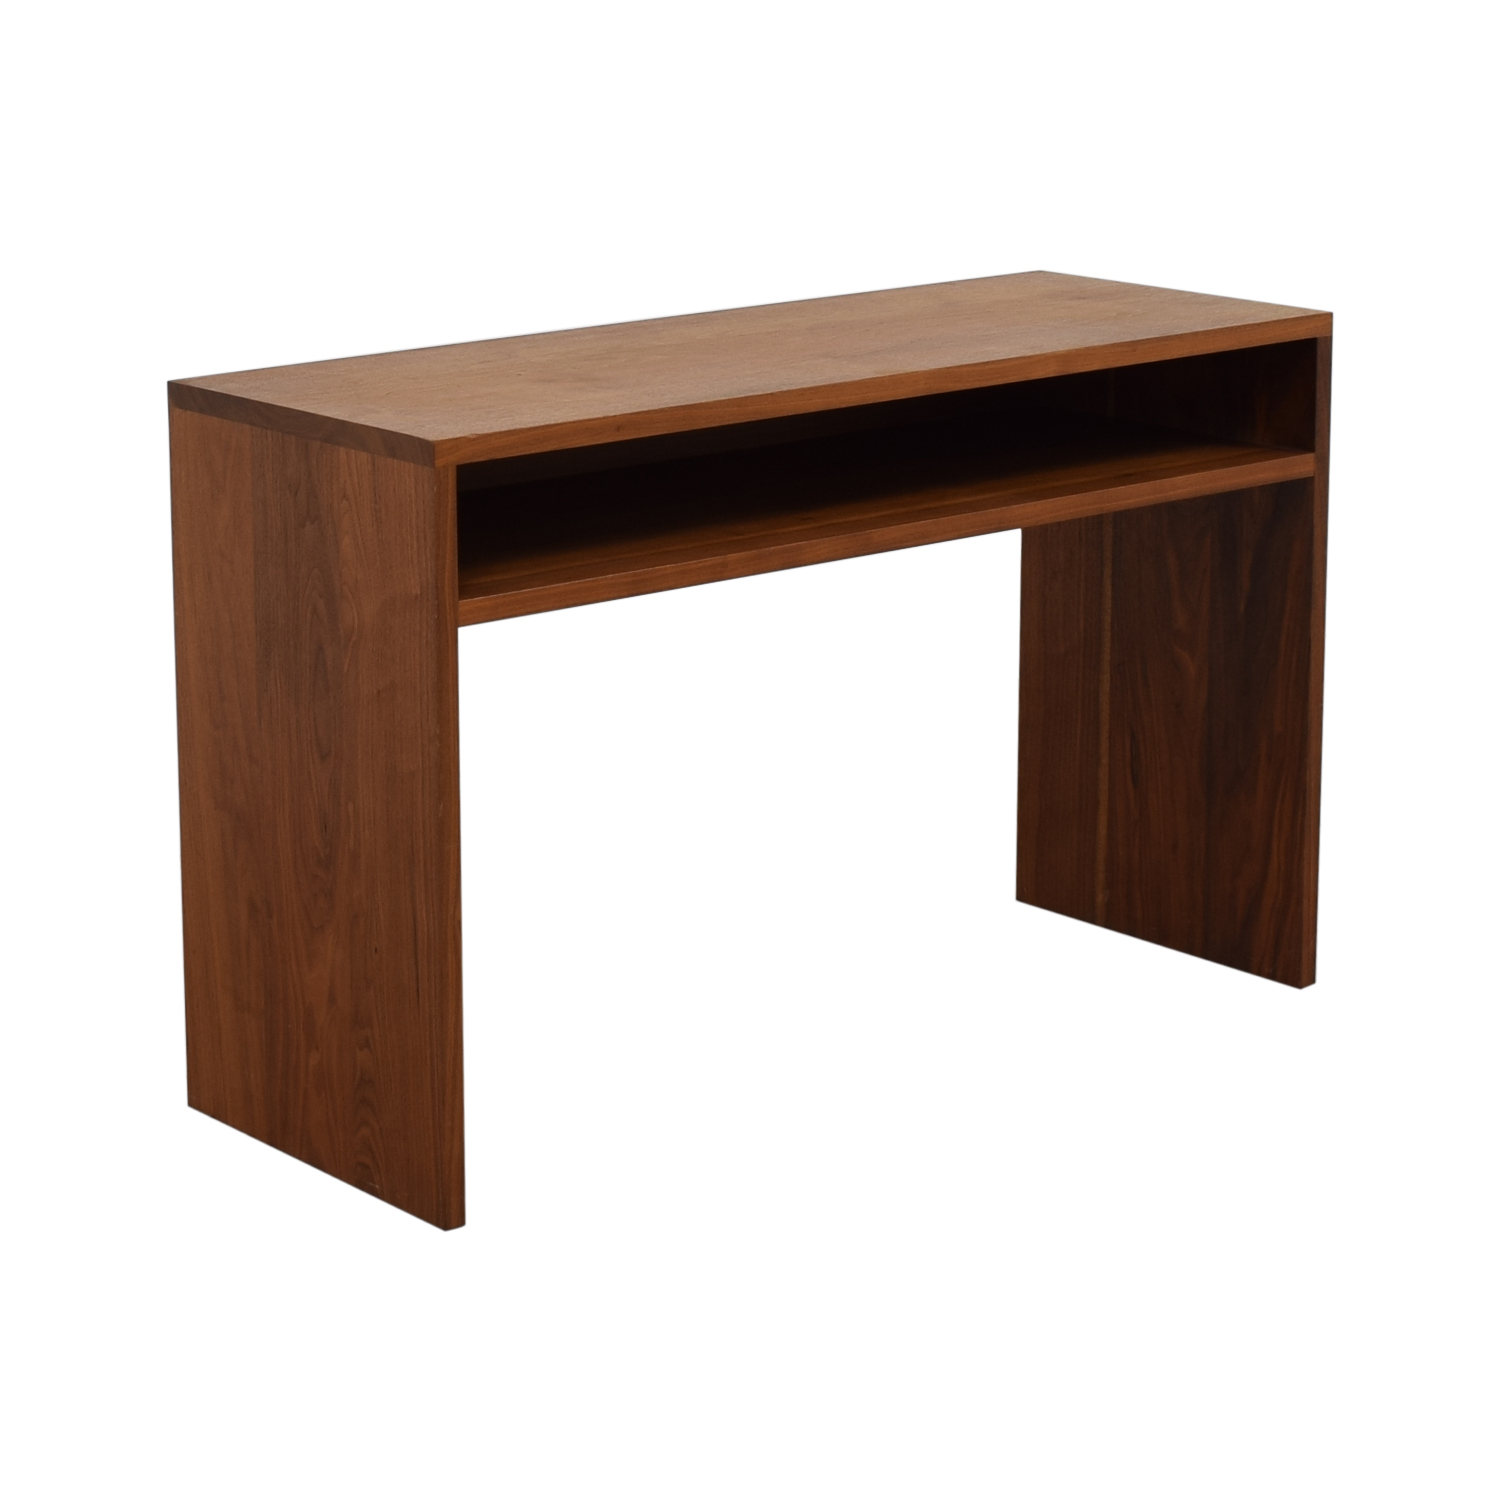 Custom Solid Walnut Desk with Enclosed Shelf Space on sale